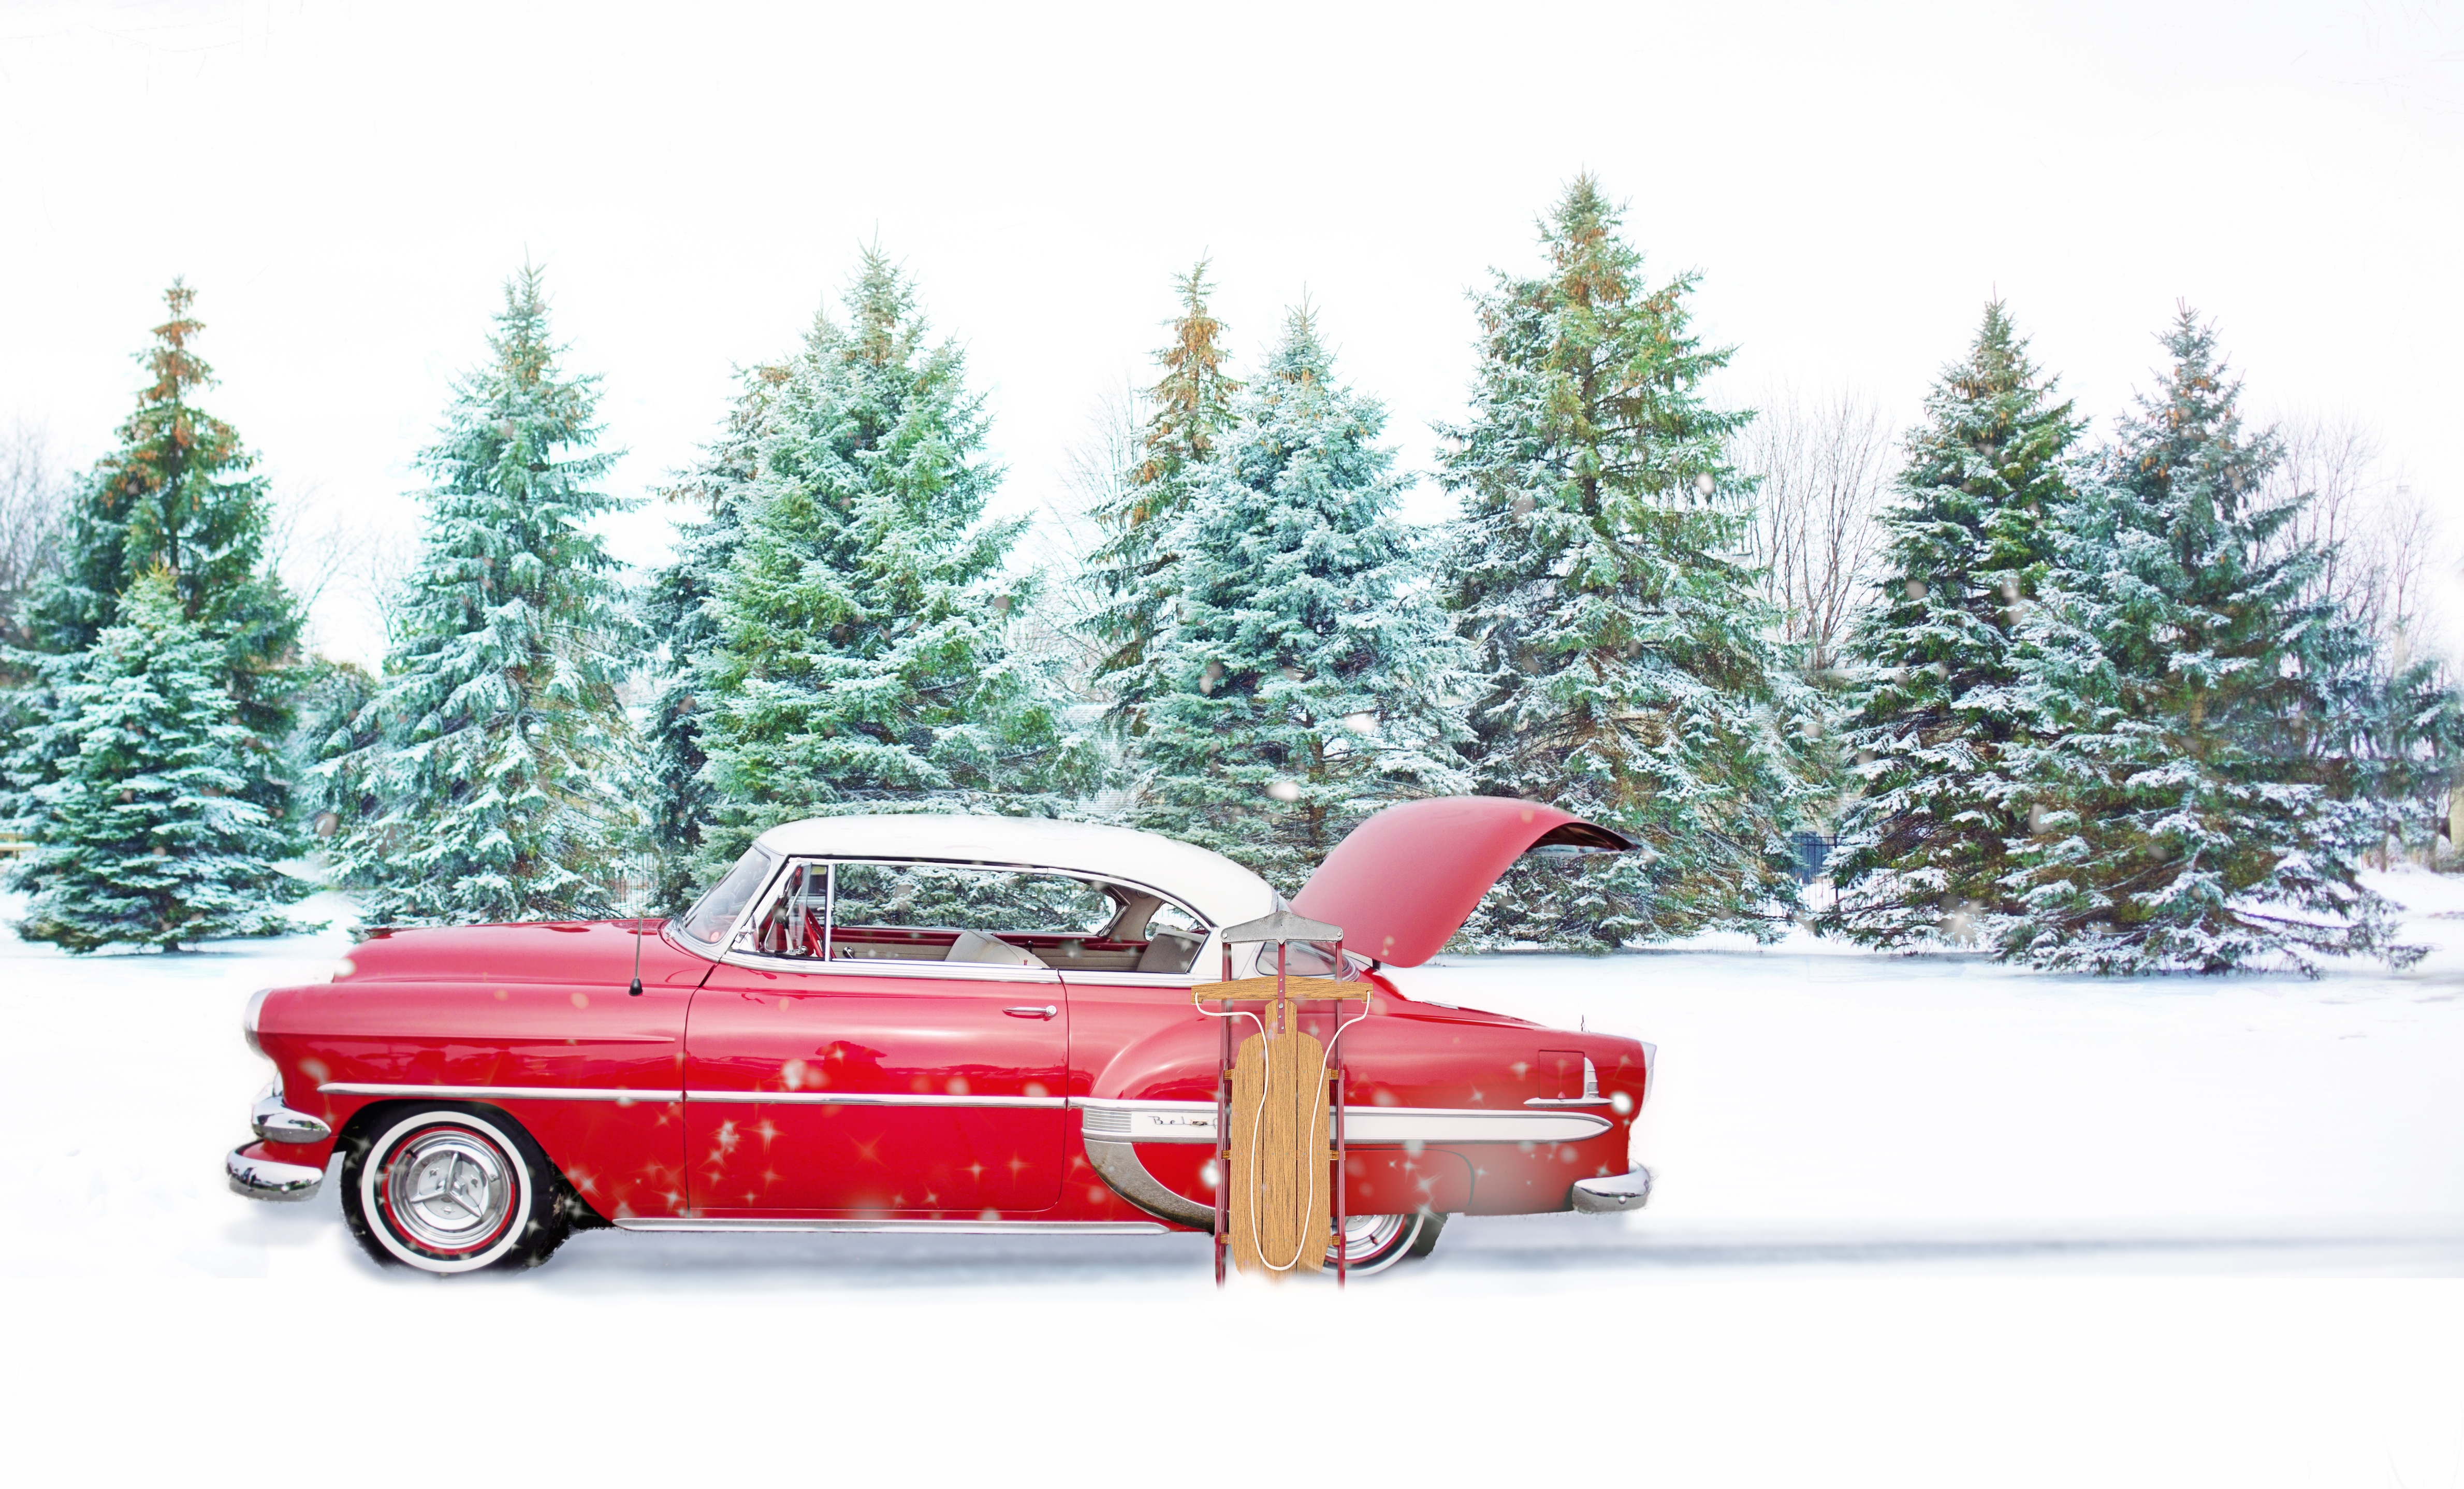 Cars The Movie Wallpapers Free Red Christmas Tree In Park 183 Free Stock Photo